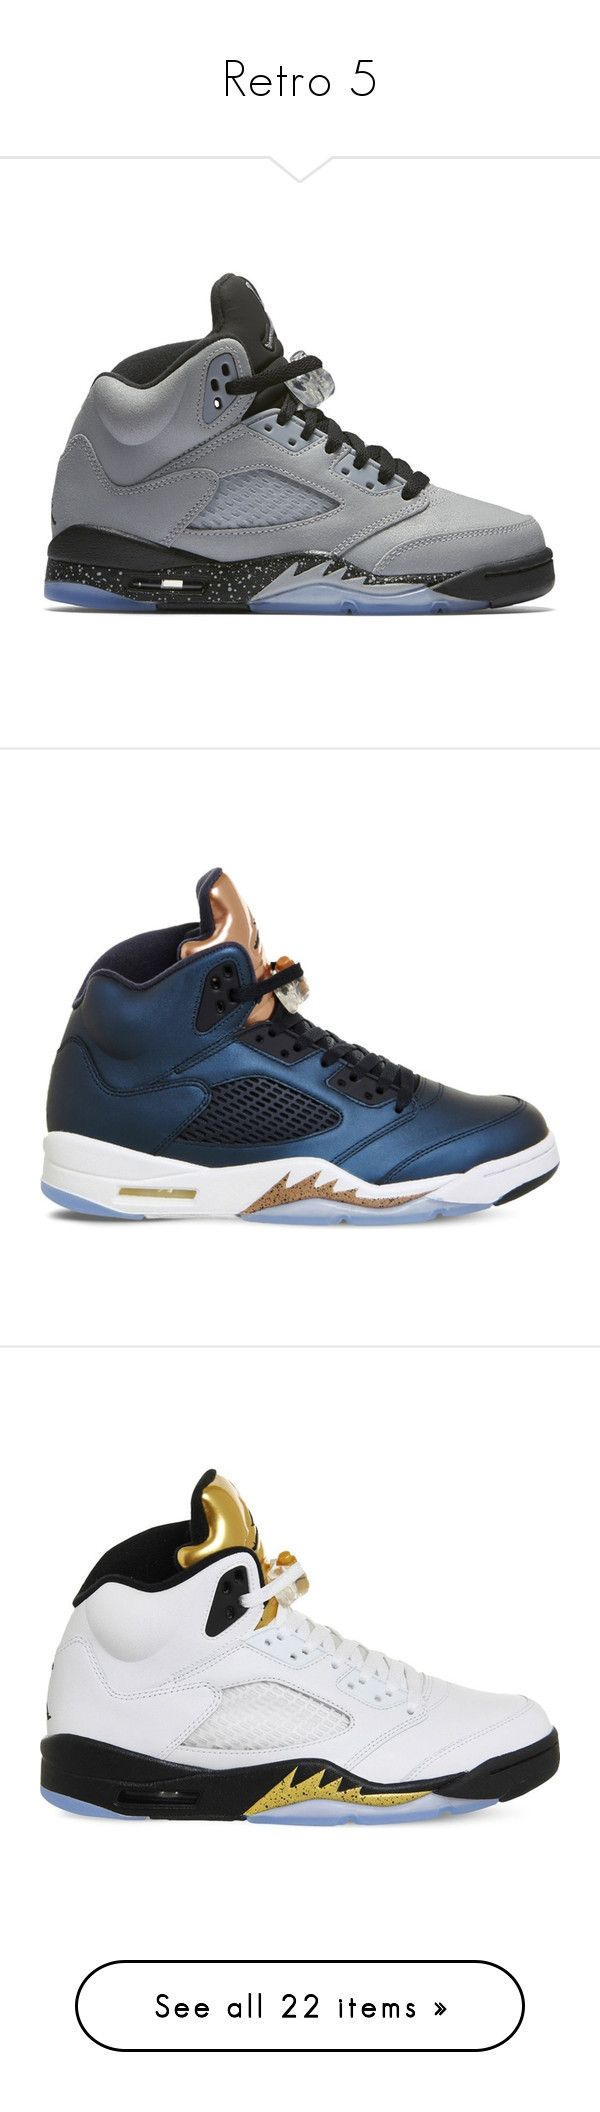 """""""Retro 5"""" by therealporshamarie ❤ liked on Polyvore featuring shoes, jordans, men's fashion, men's shoes, men's athletic shoes, blue, nike mens athletic shoes, mens low top basketball shoes, mens blue shoes and mens blue basketball shoes"""